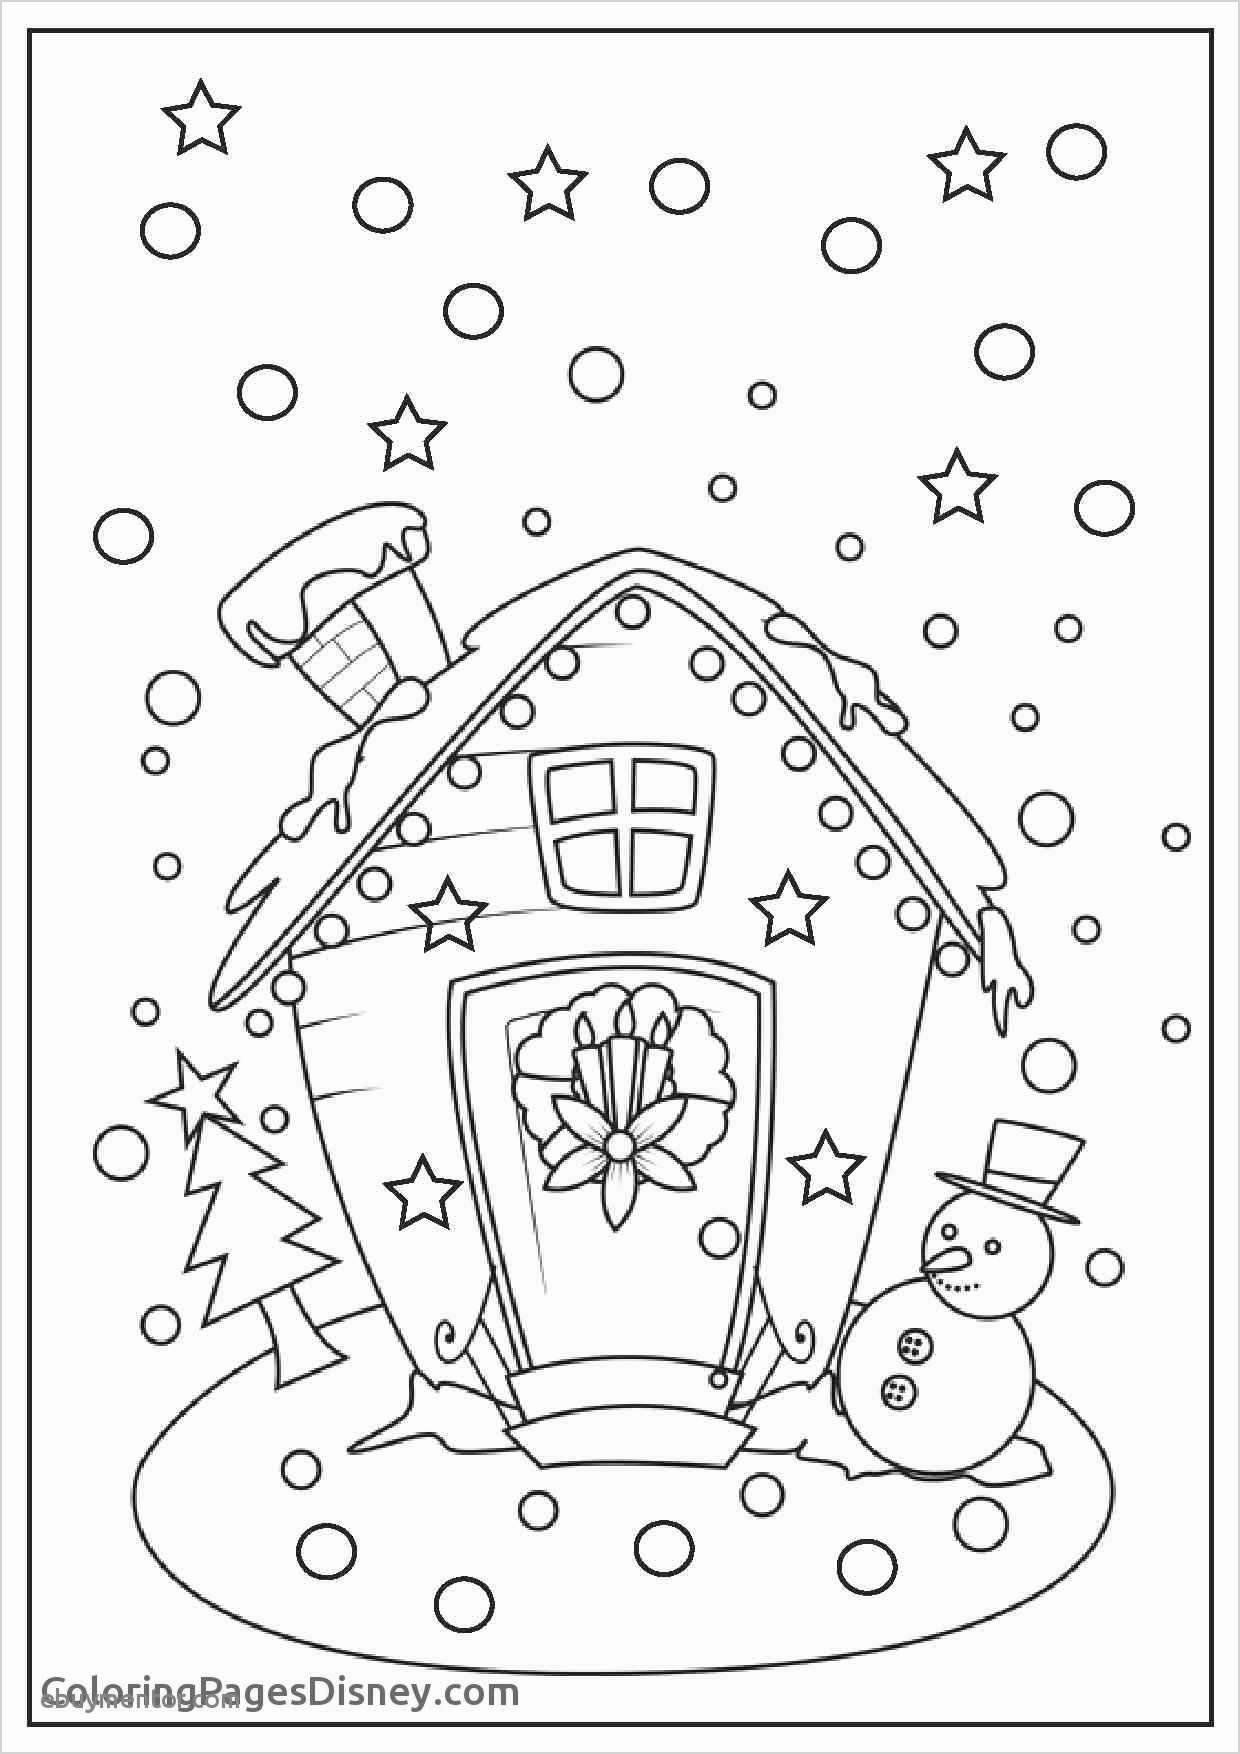 Nigerian Flag Coloring Page Lovely Luxury Nigeria Map Coloring